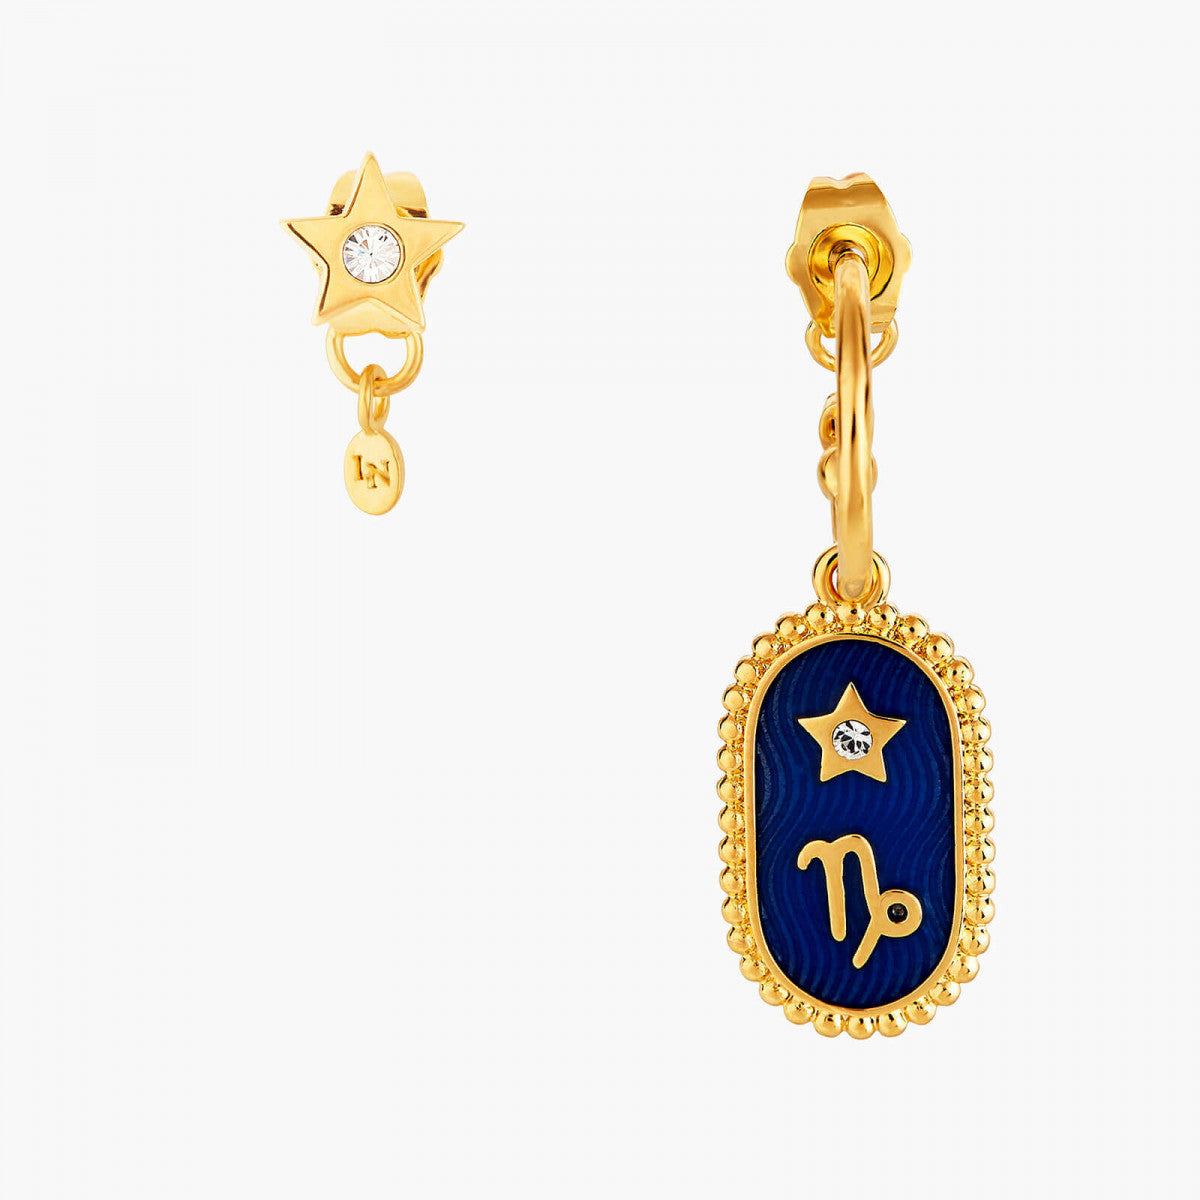 Capricorn Zodiac Sign Stud Earrings